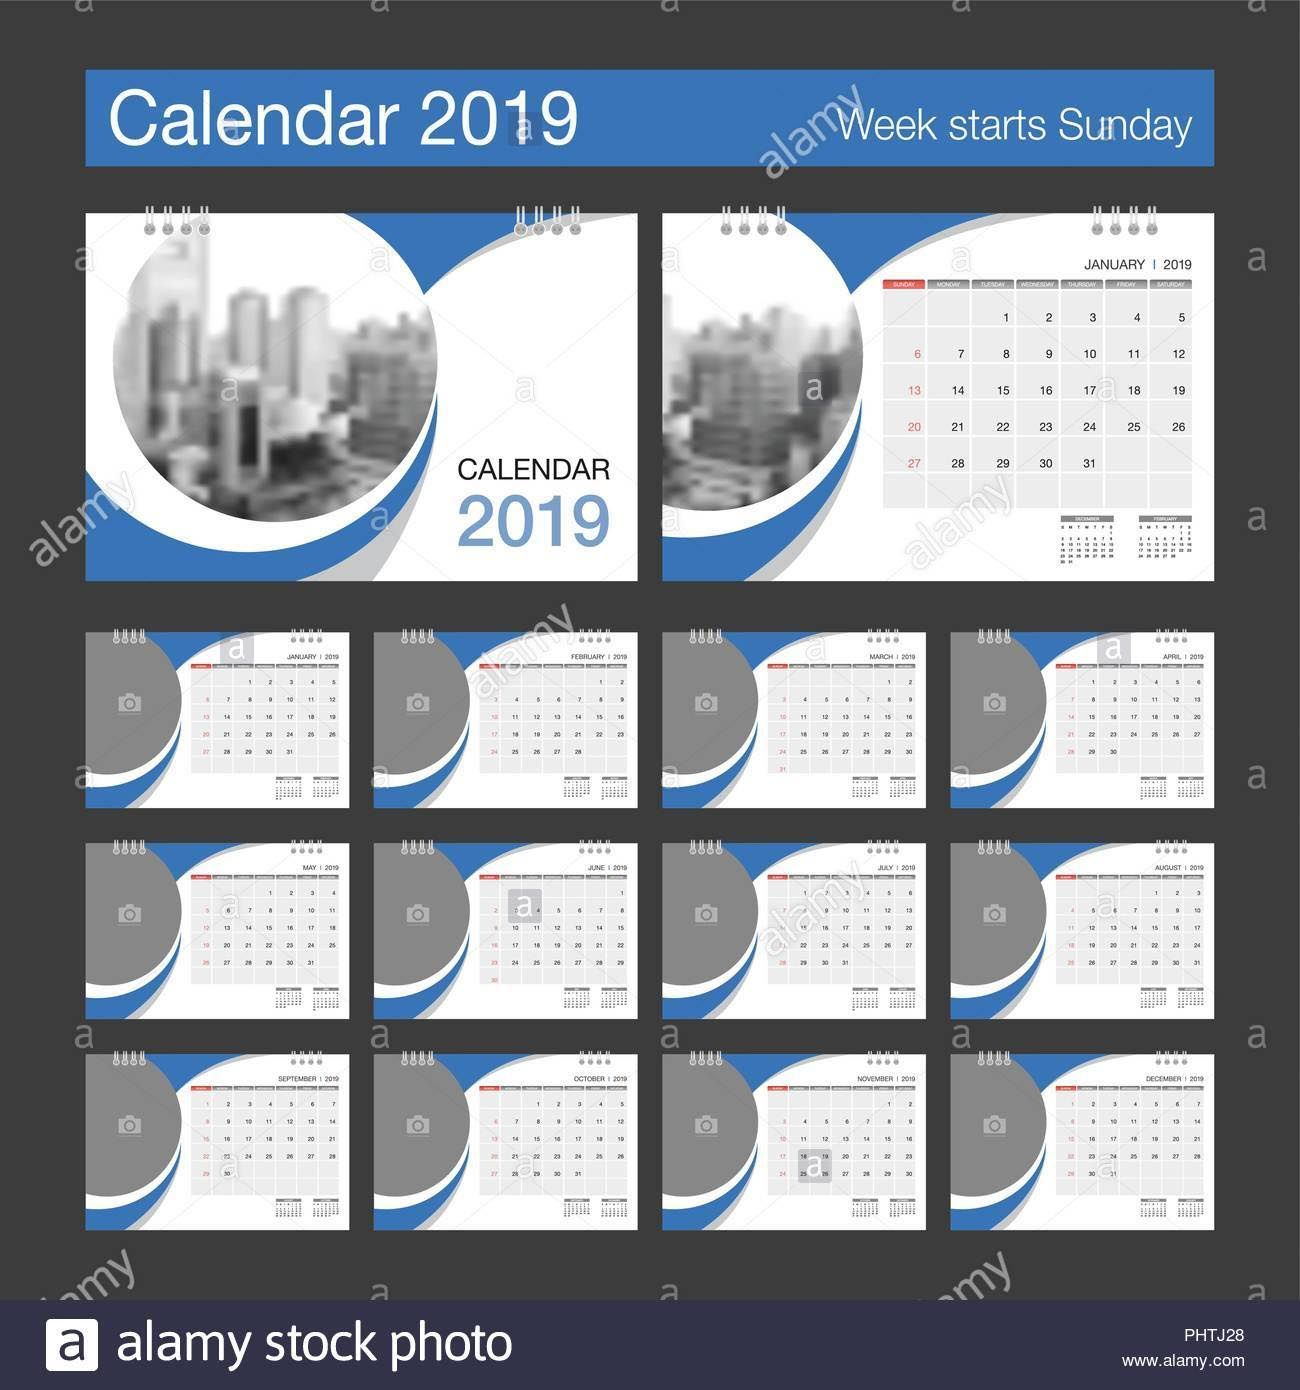 Terrific Free October Calendar 2020 Ideas Are You A Person That